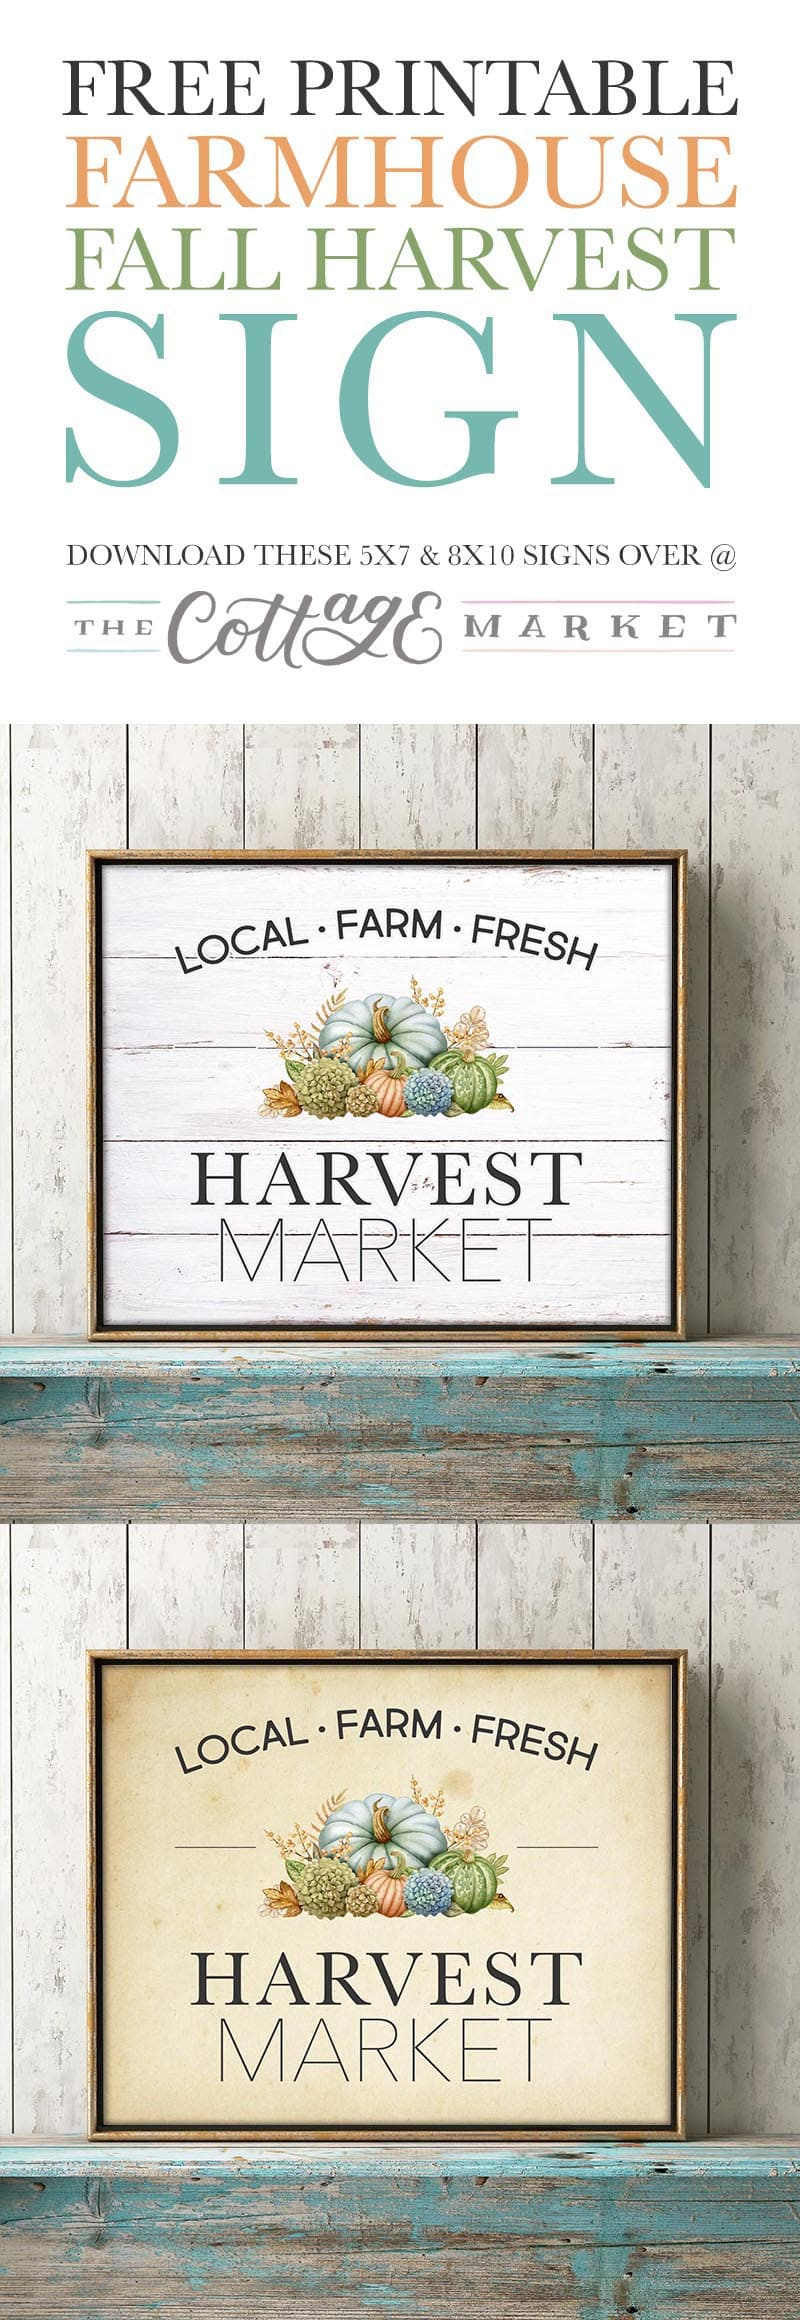 This Free Printable Farmhouse Fall Harvest Sign will bring a smile to your Wall, Gallery Wall, Vignette and more this Fall Season.  Comes in 2 sizes and 4 styles... ready to be framed!